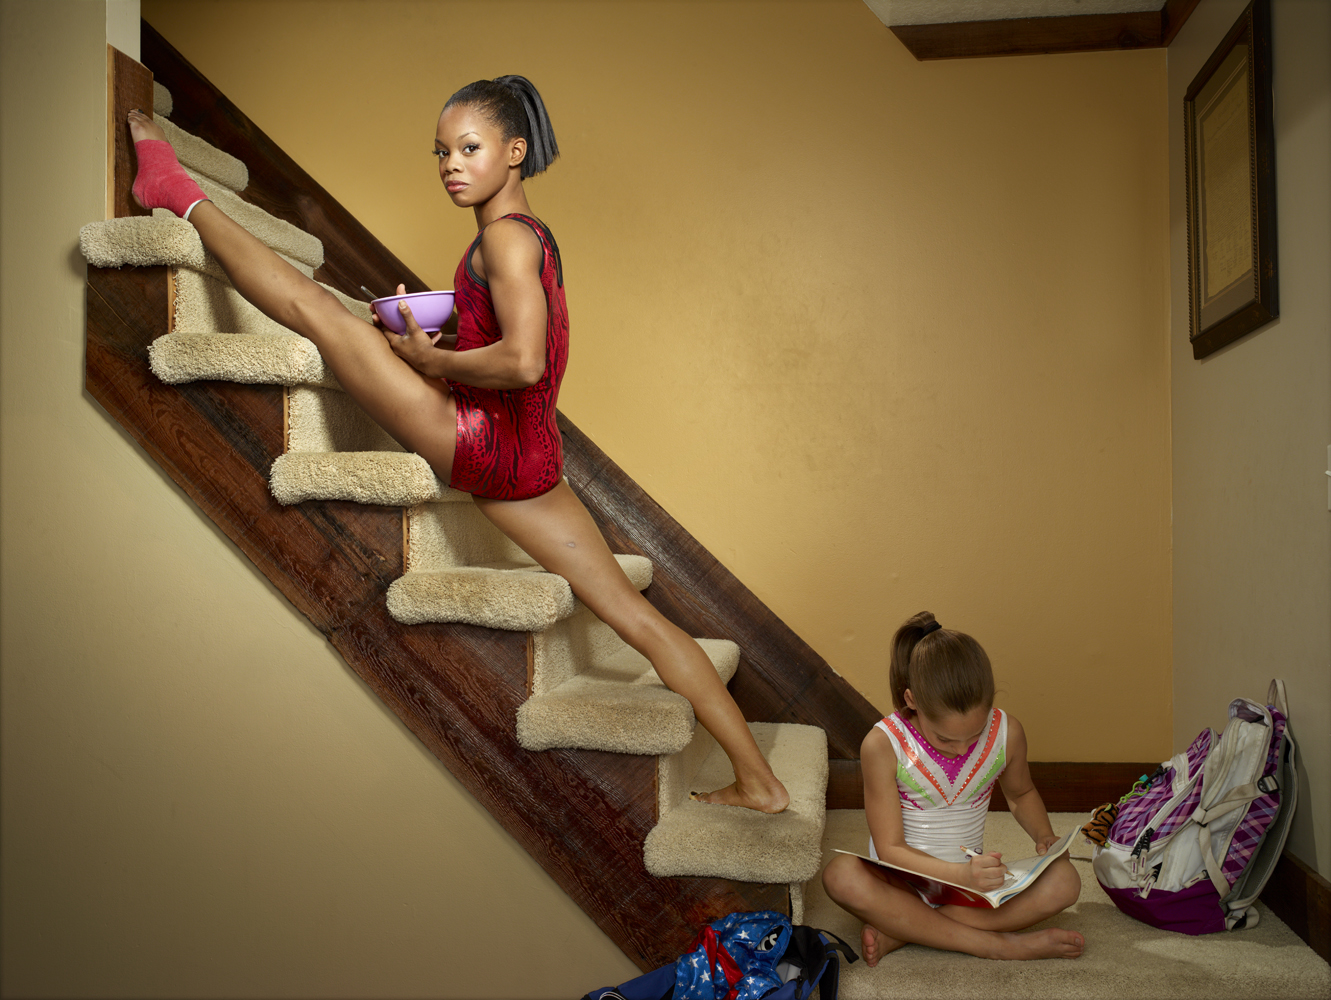 Douglas eats breakfast while stretching on the stairs of her host family's home in Des Moines, Iowa.